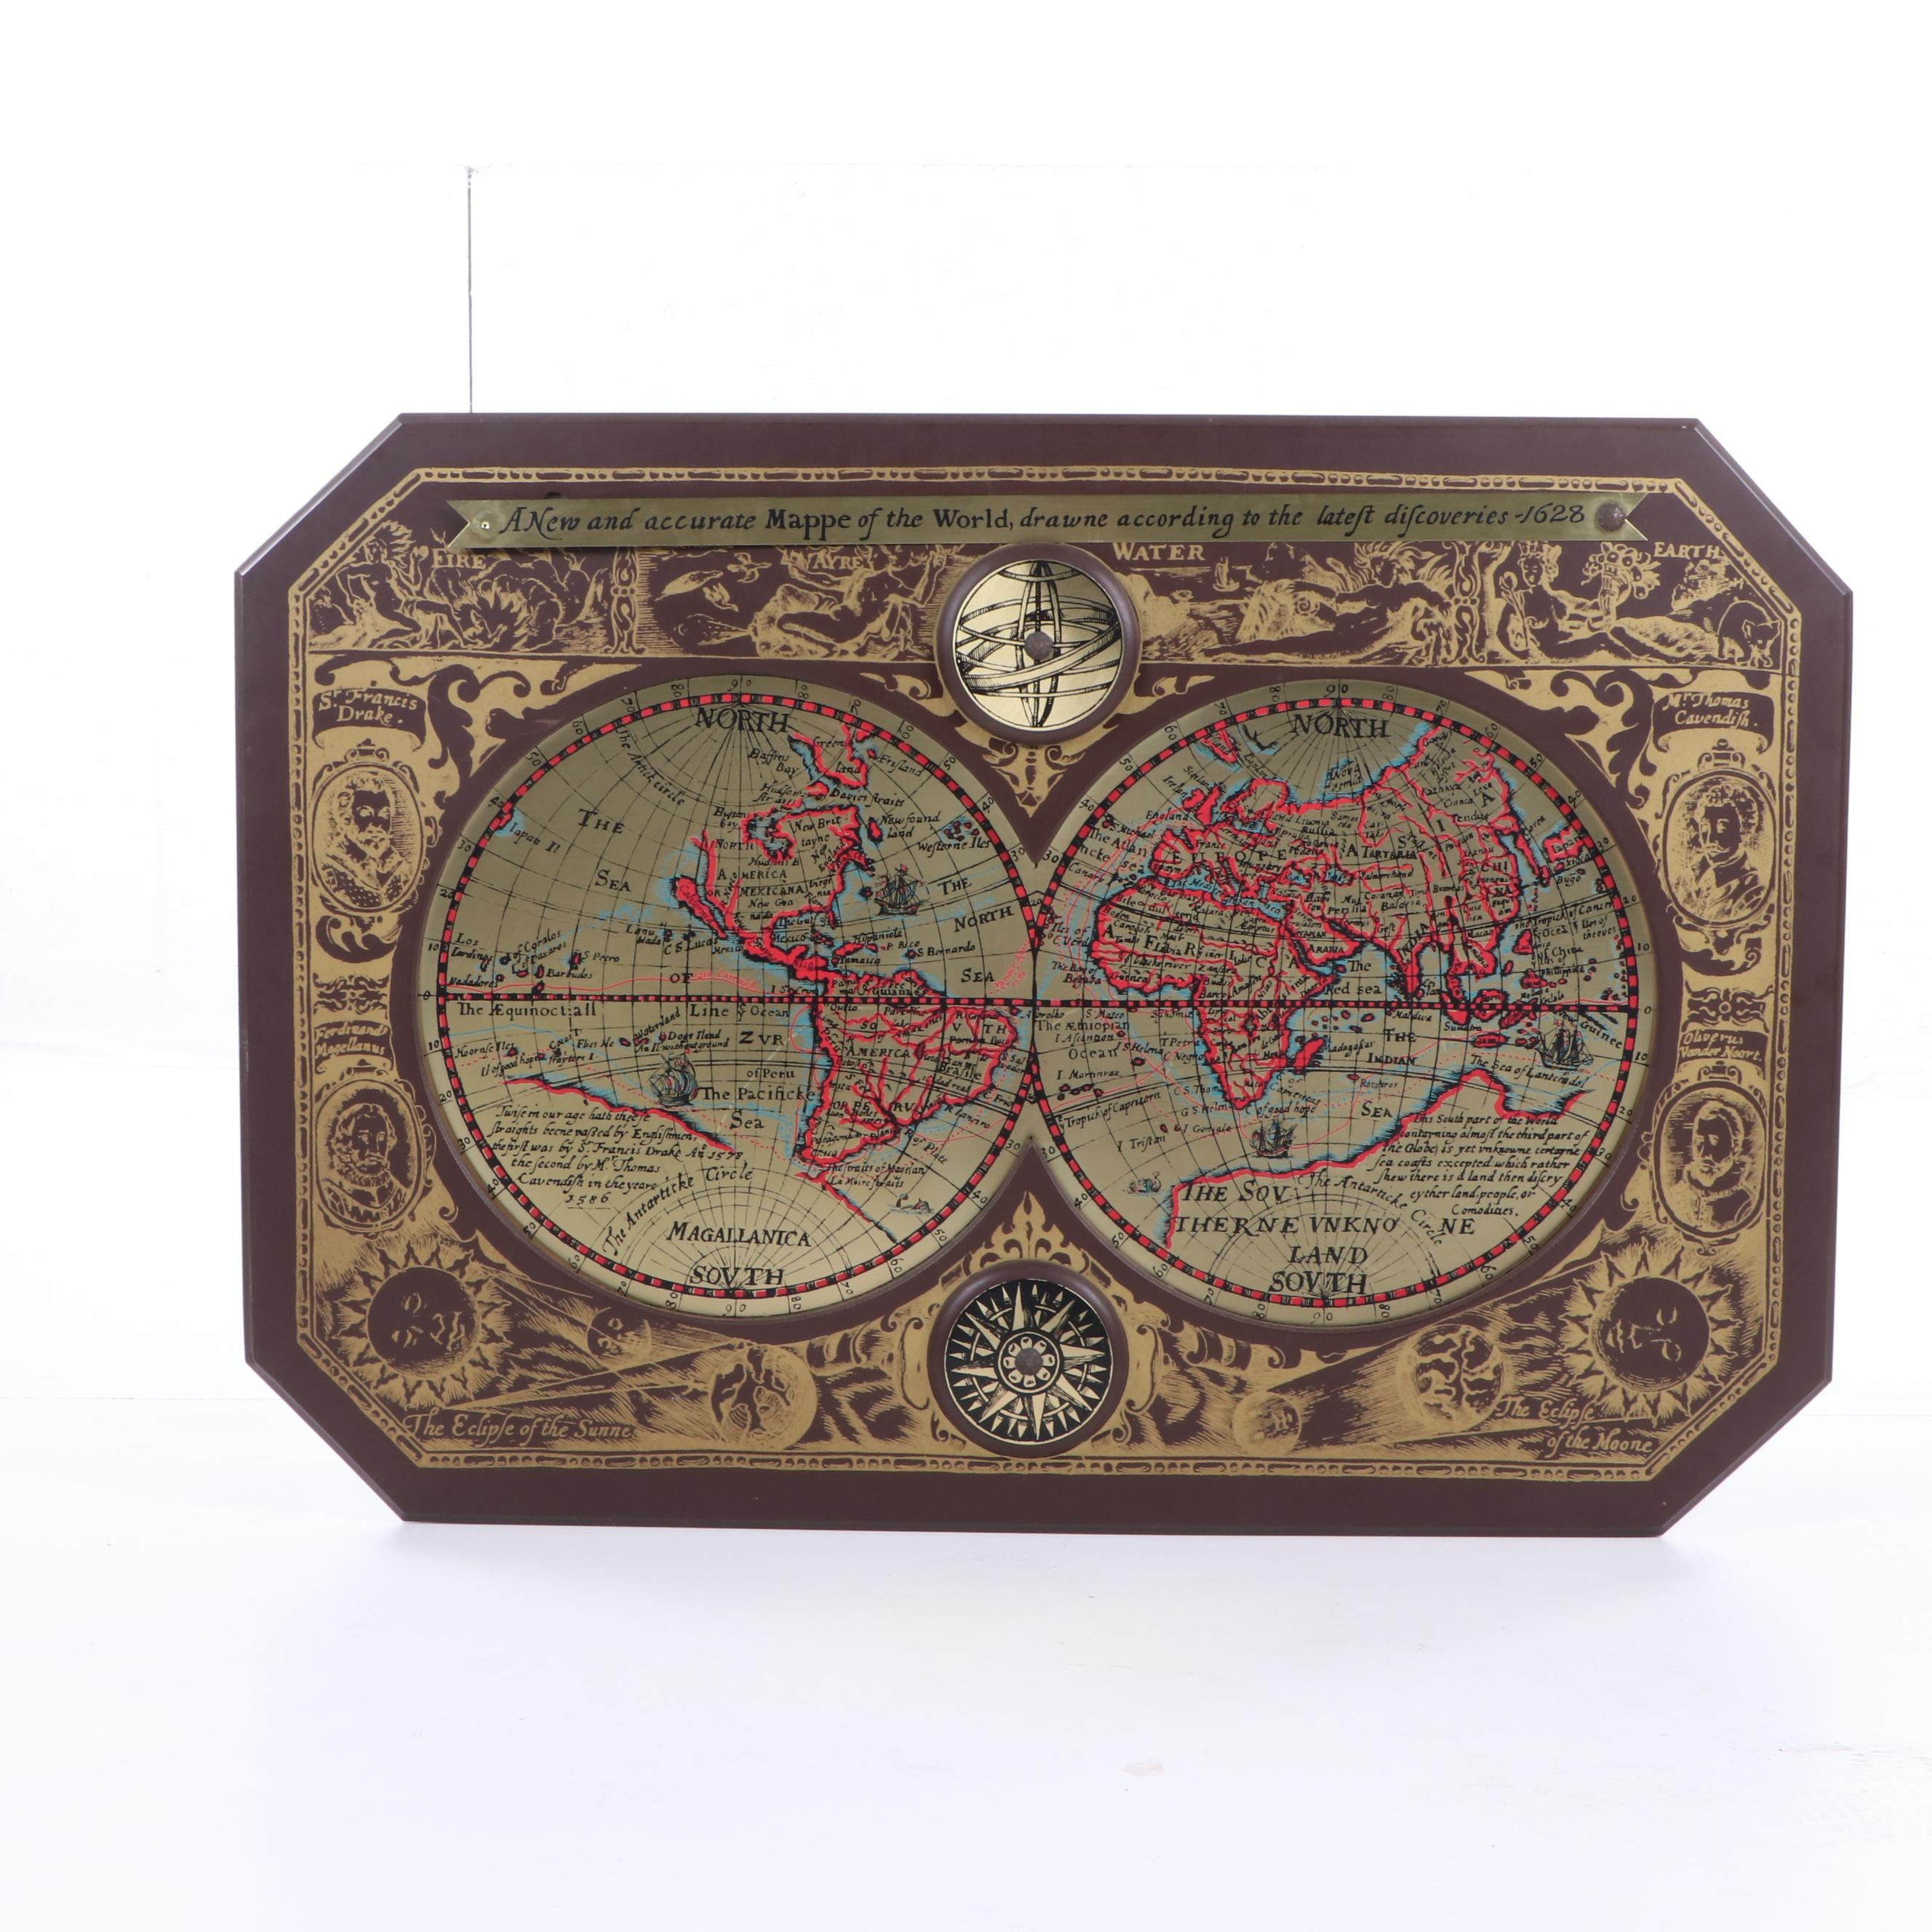 1964 Masketeers Decorative Reproduction 1628 World Map